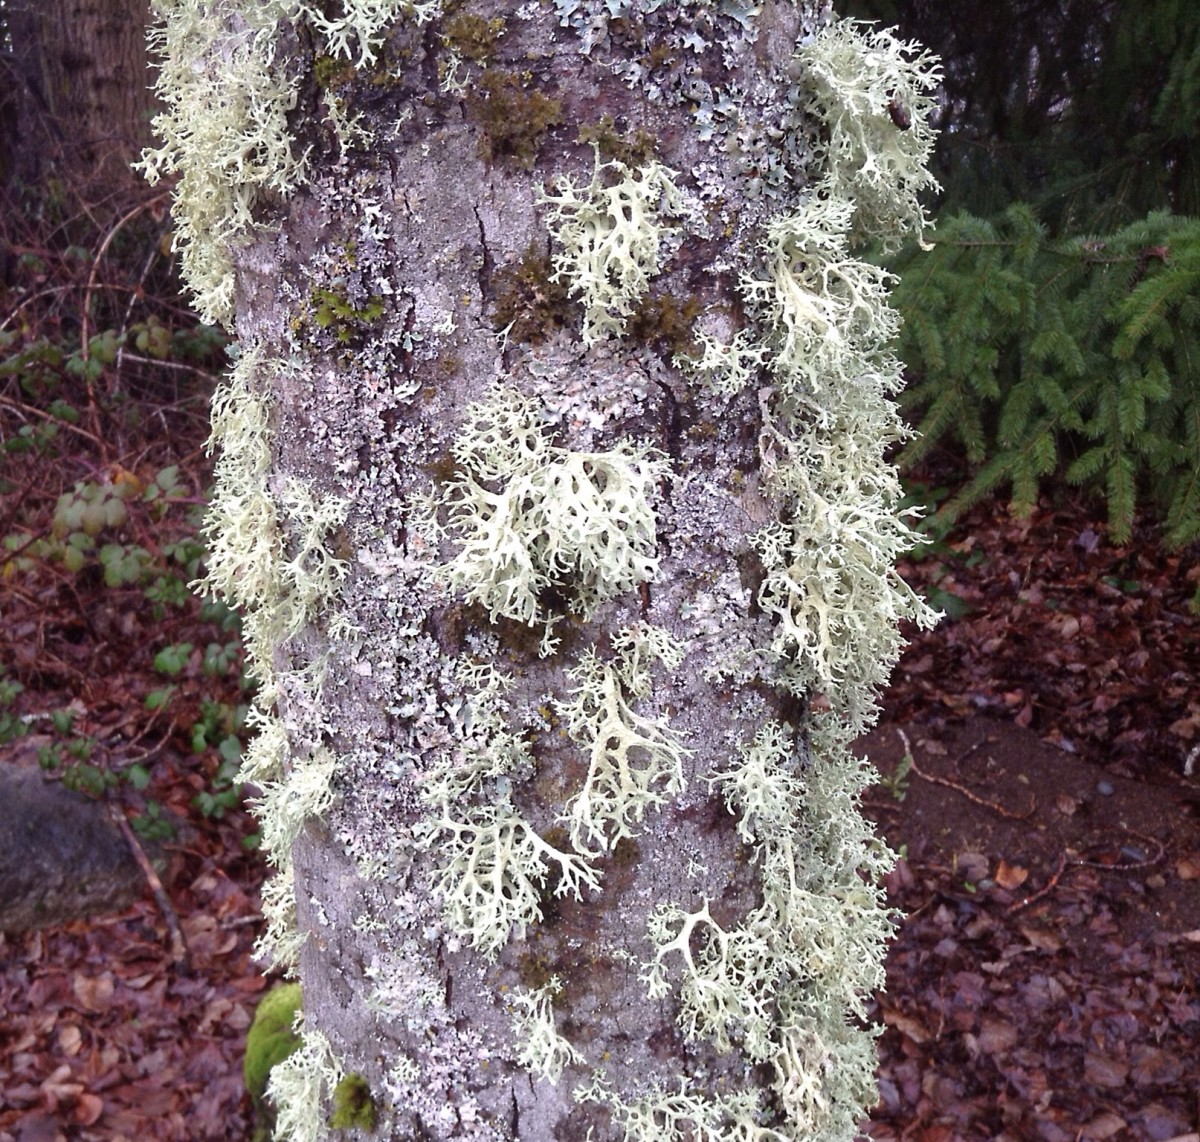 An interesting tree trunk covered with fruticose and foliose lichens as well as moss